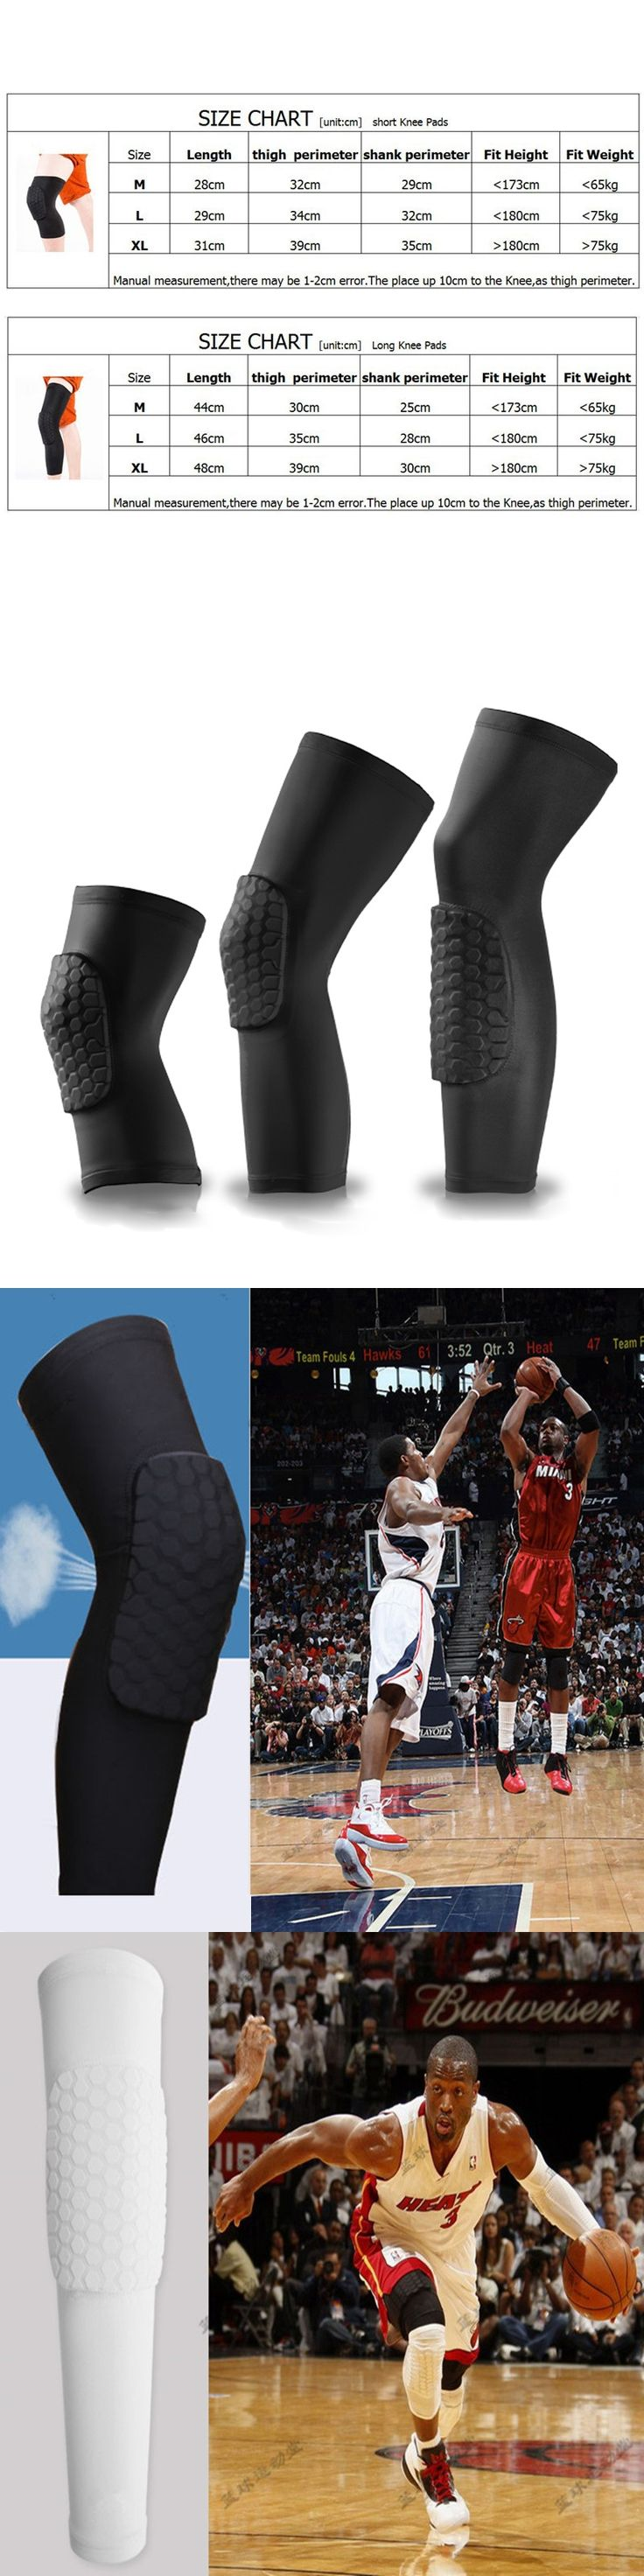 Normal /Thicken Anti-collision Basketball Knee Pads Tactical Football Pads Knee Support Calf Sleeve Protector Sport Accessories